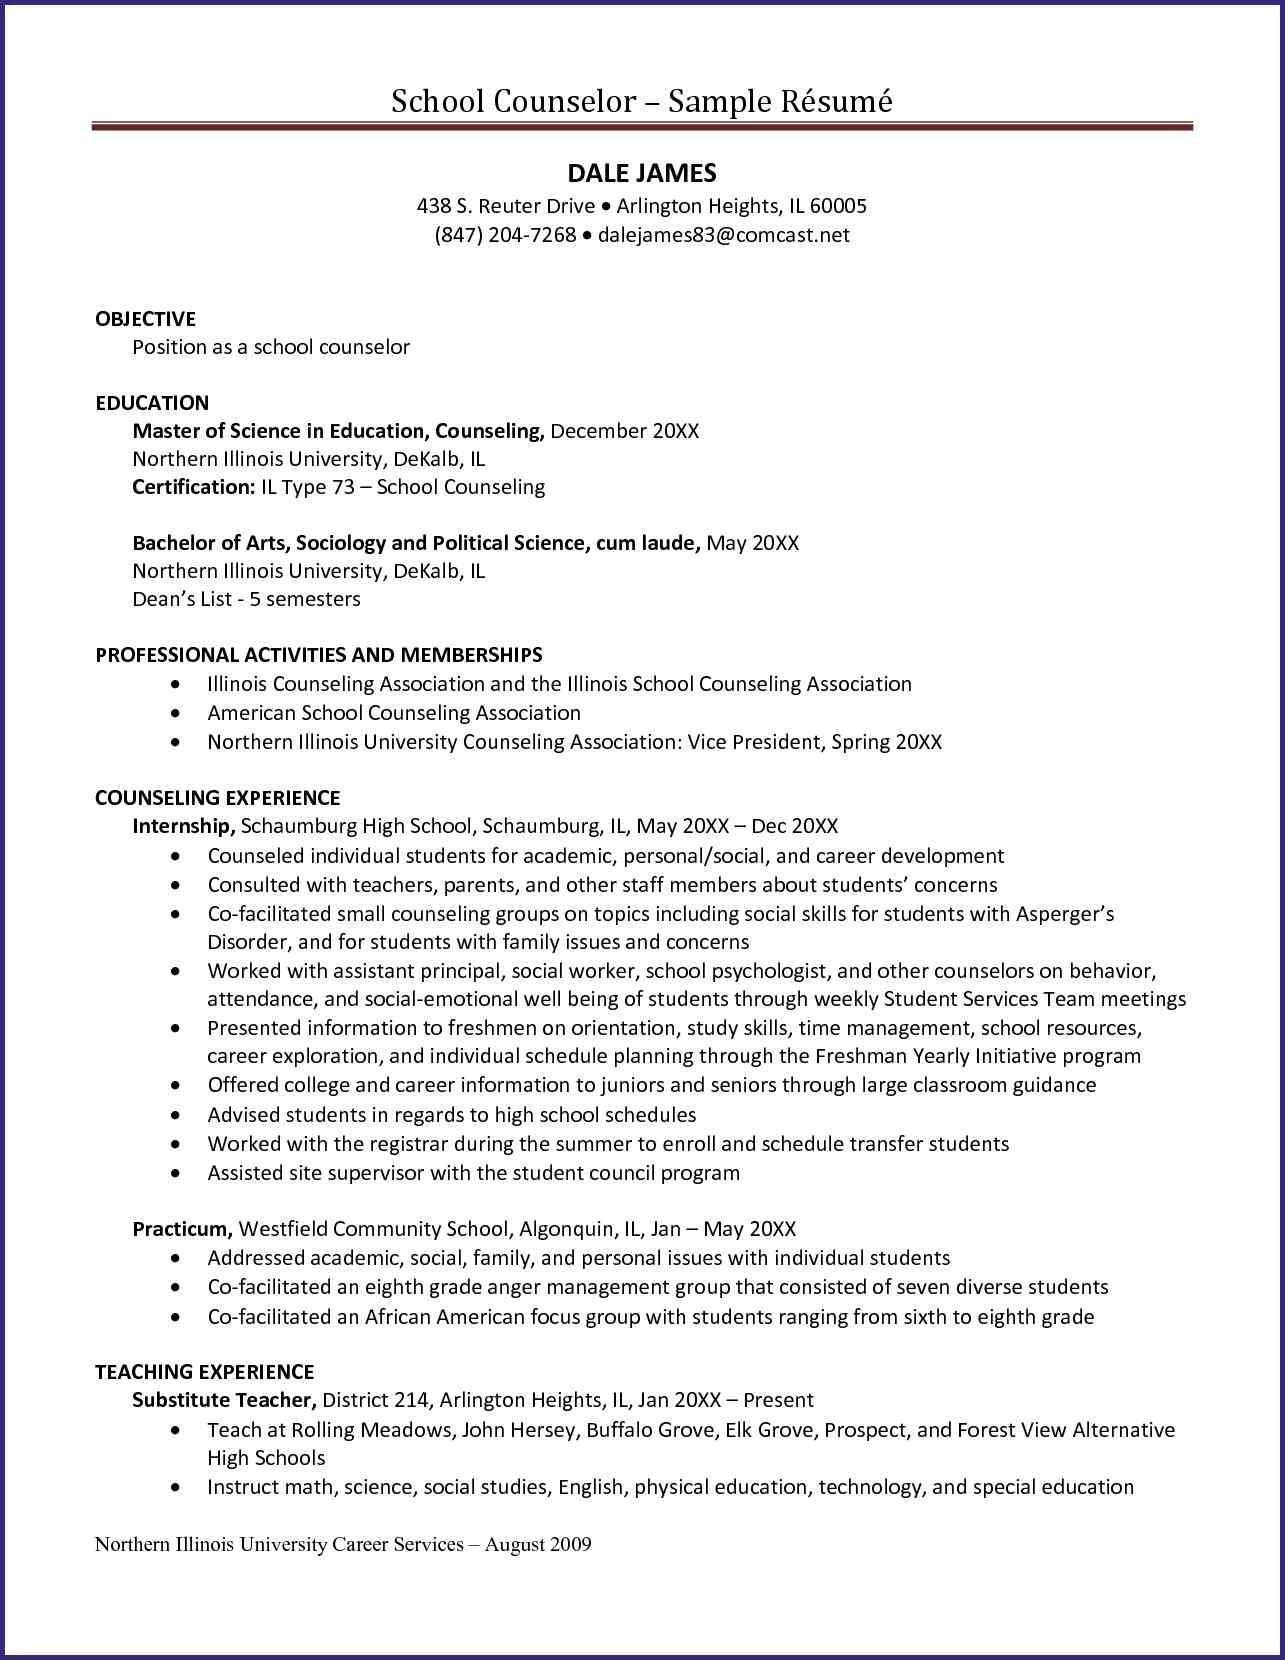 school counselor resume template Collection-Camp Counselor Resume 23 Camp Counselor Resume 12-b